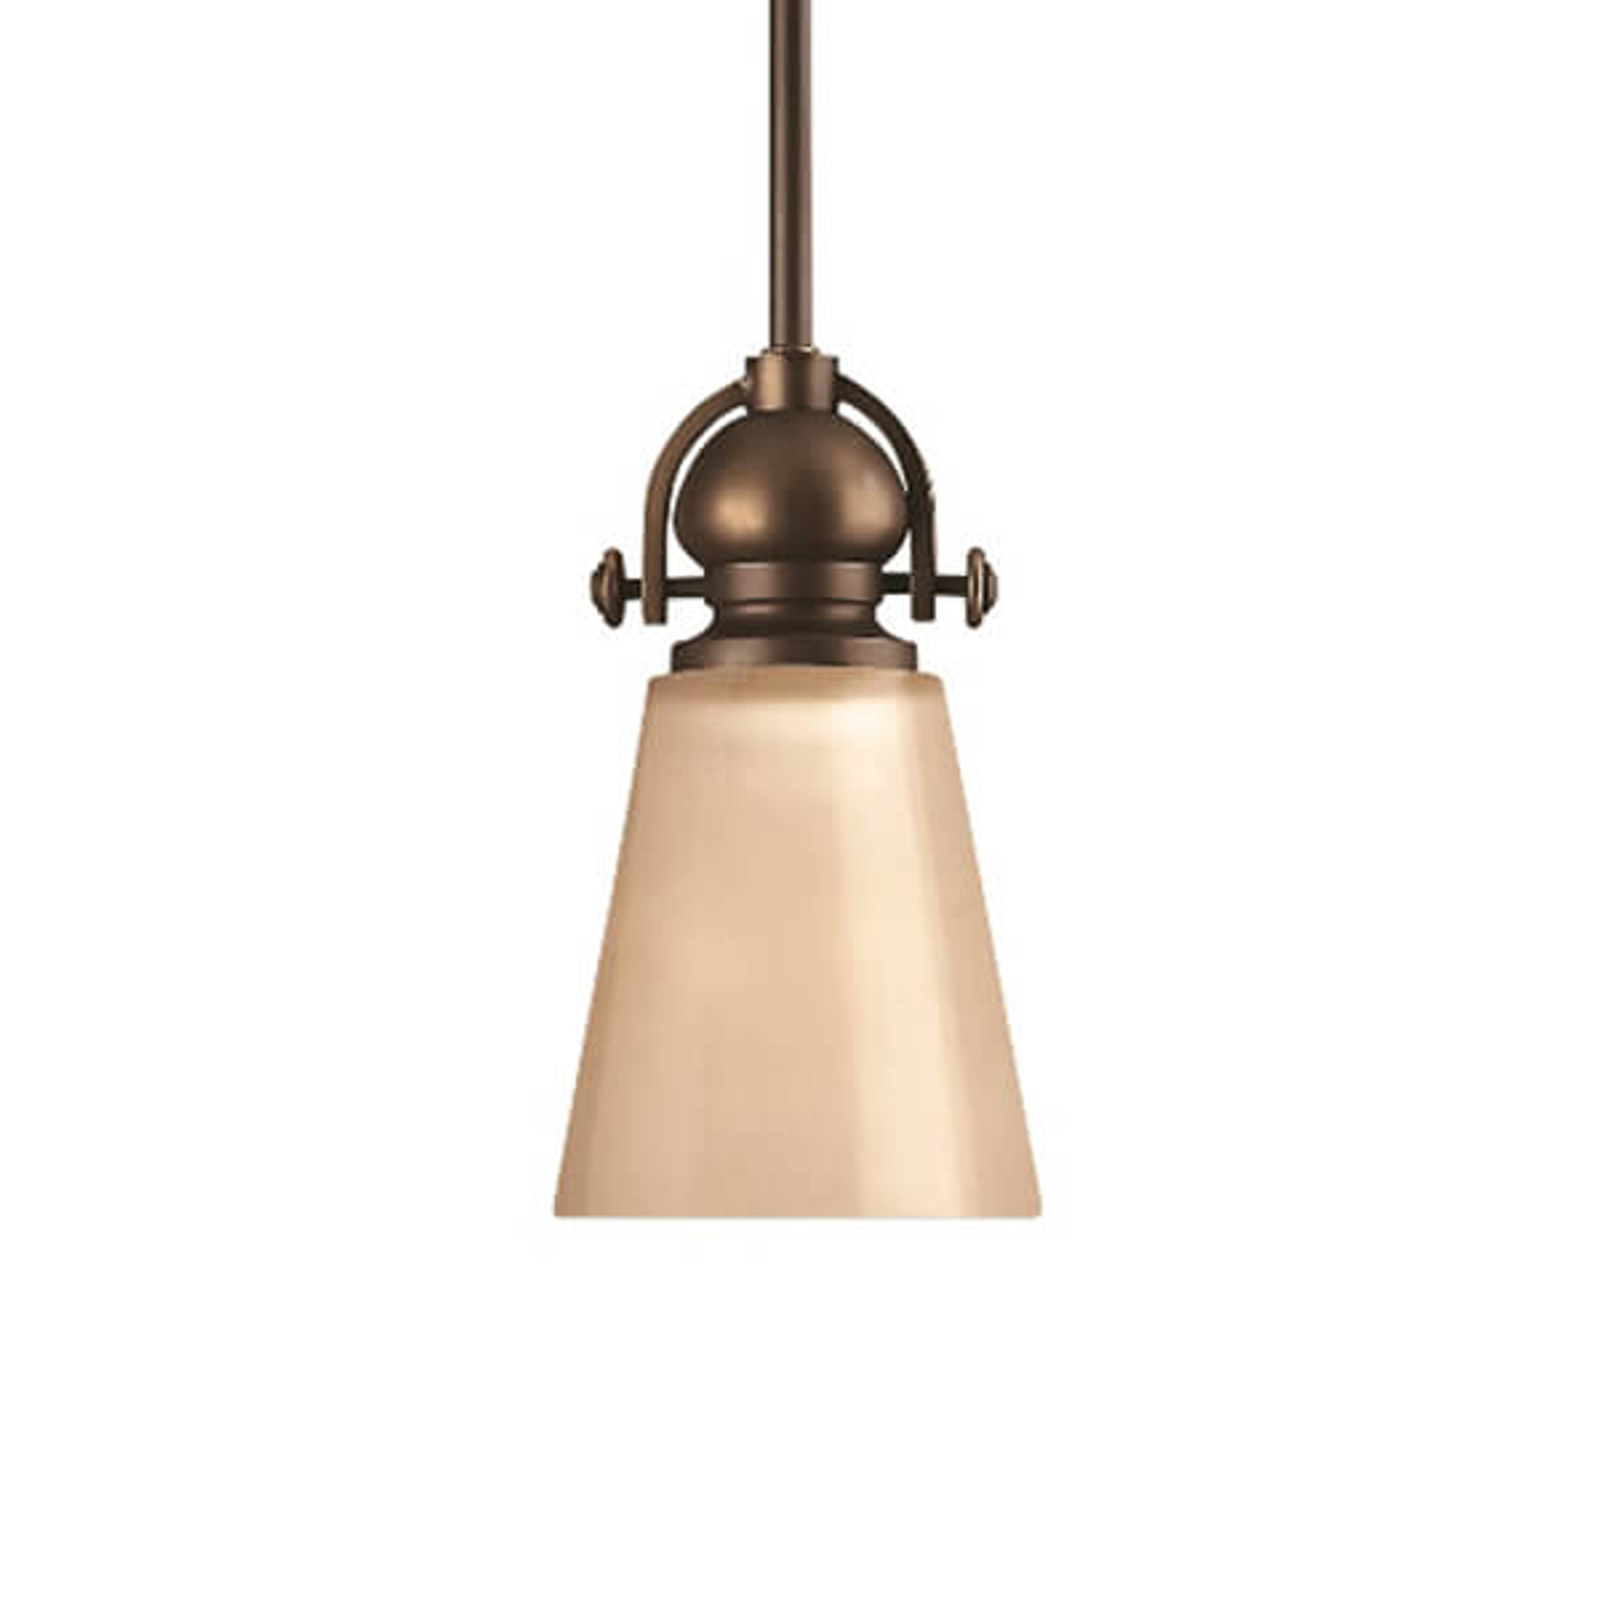 Suspension classique Mayflower 12,7 cm